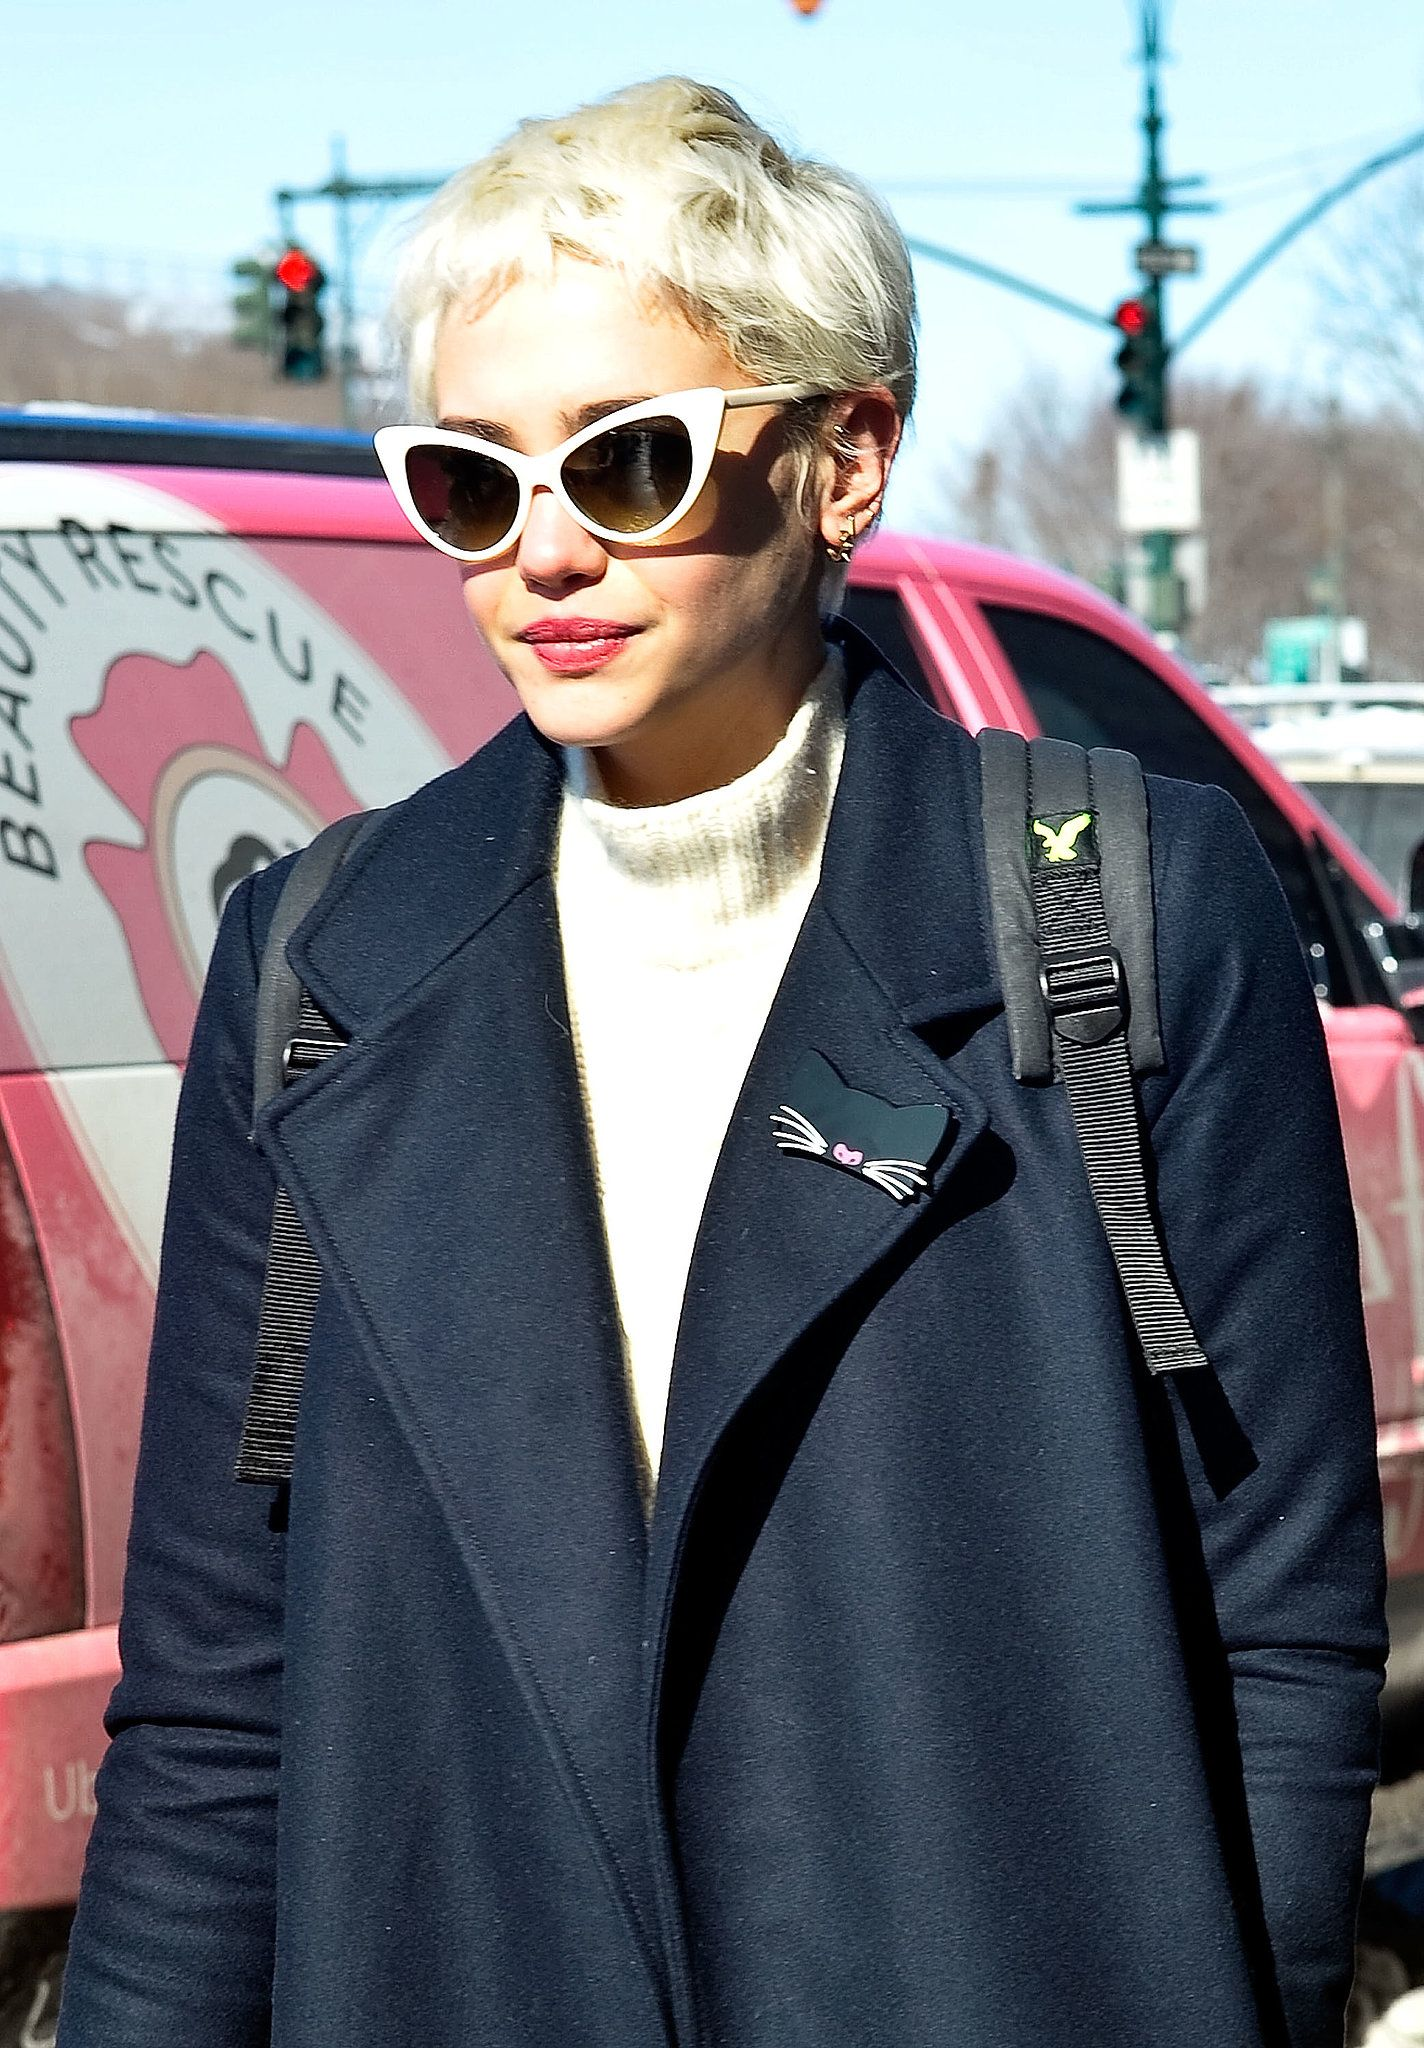 A bleached pixie cut got the vintage treatment with cat-eye sunglasses and beautiful peach lipstick.